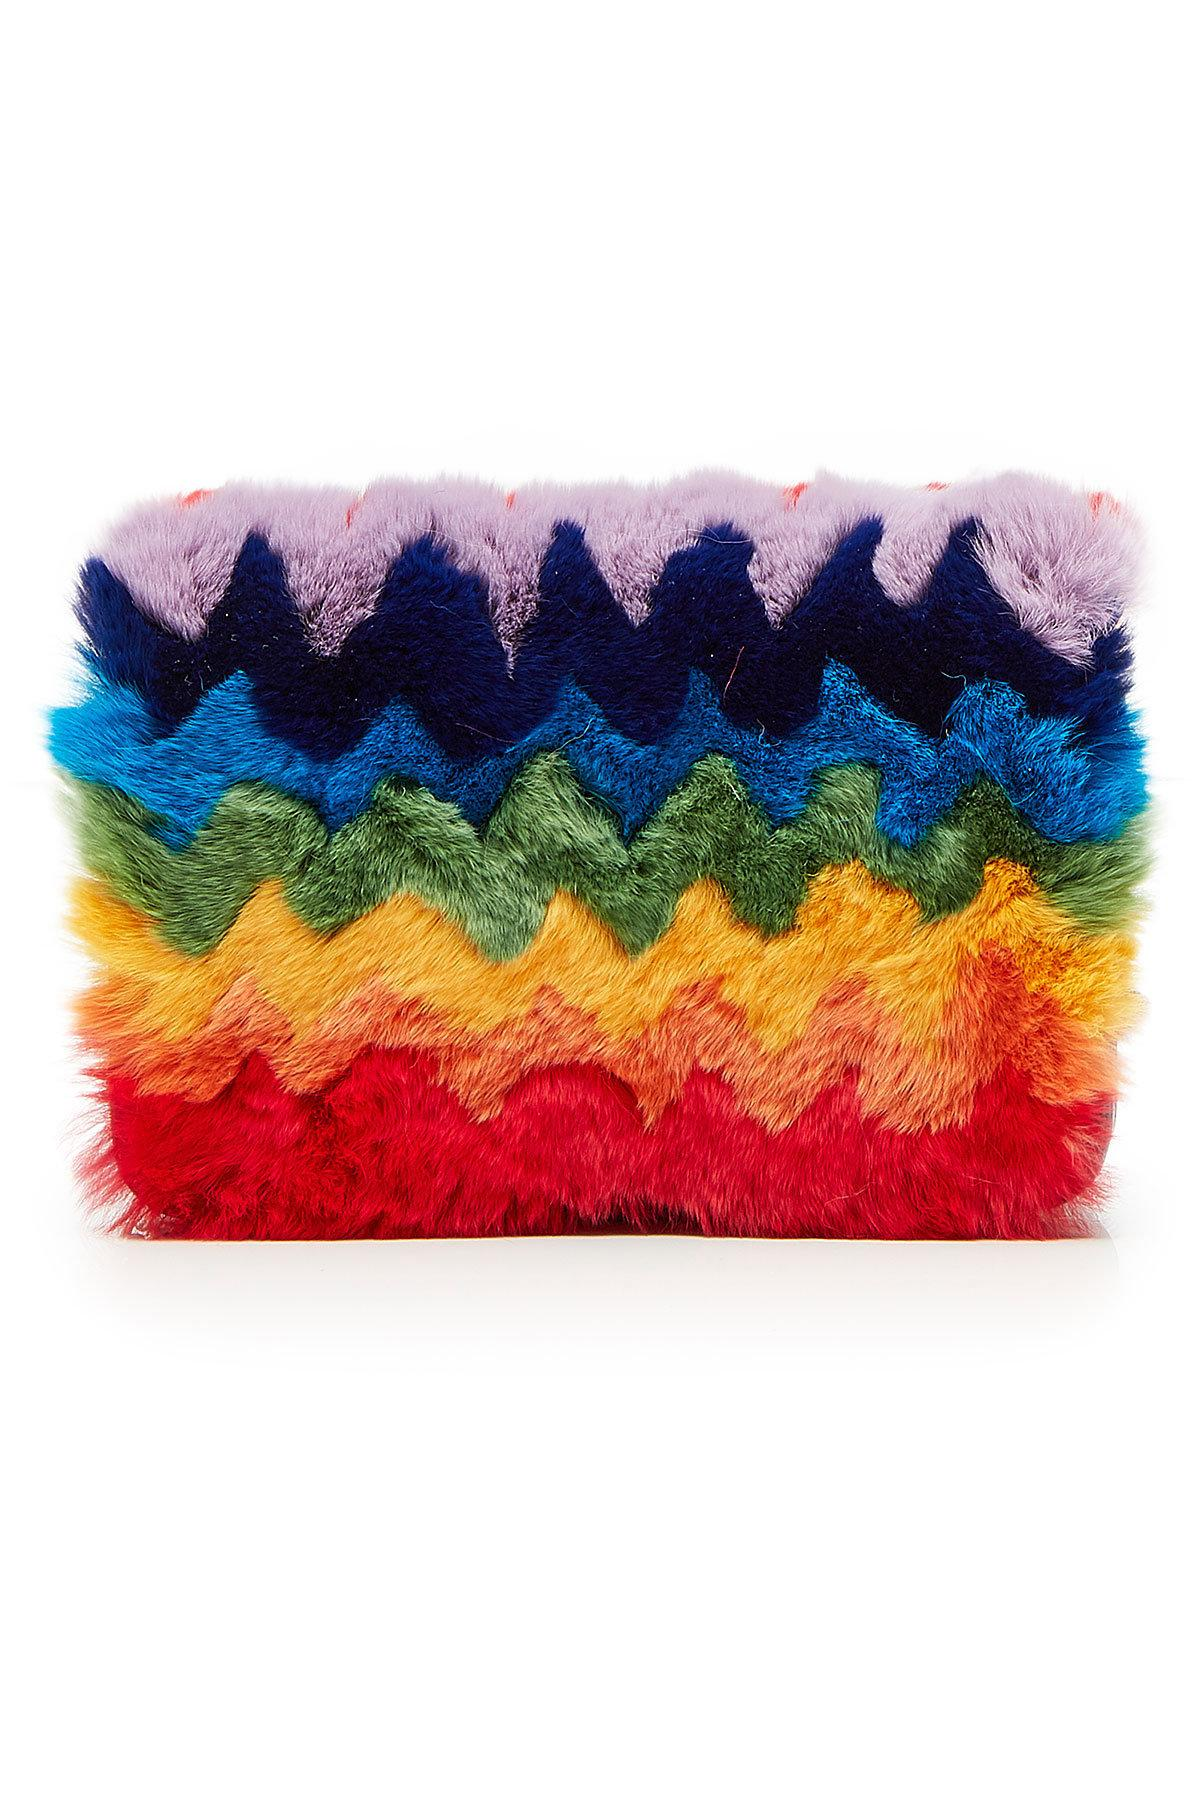 Les Petits Joueurs Fur Clutch With Leather In Multicolored